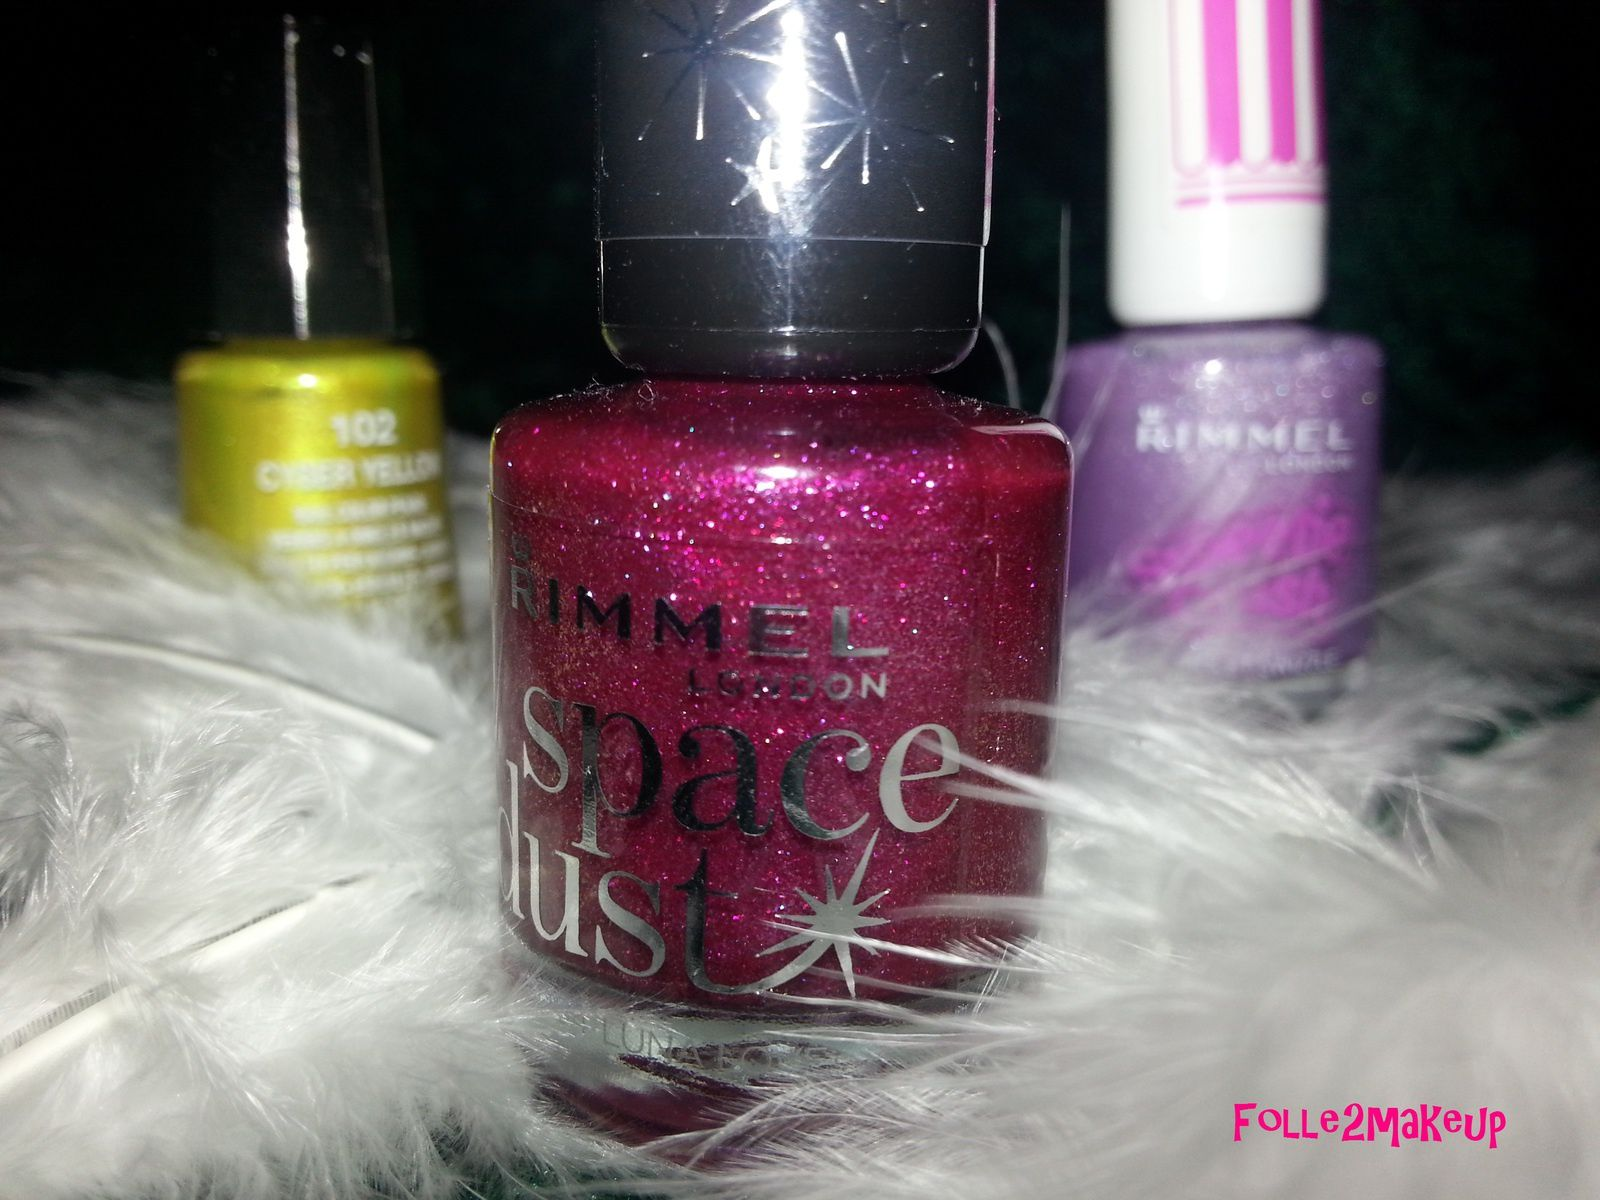 "Derniers achats de MARS: ""Luna Love"" - 004 collection Space Dust de RIMMEL London"